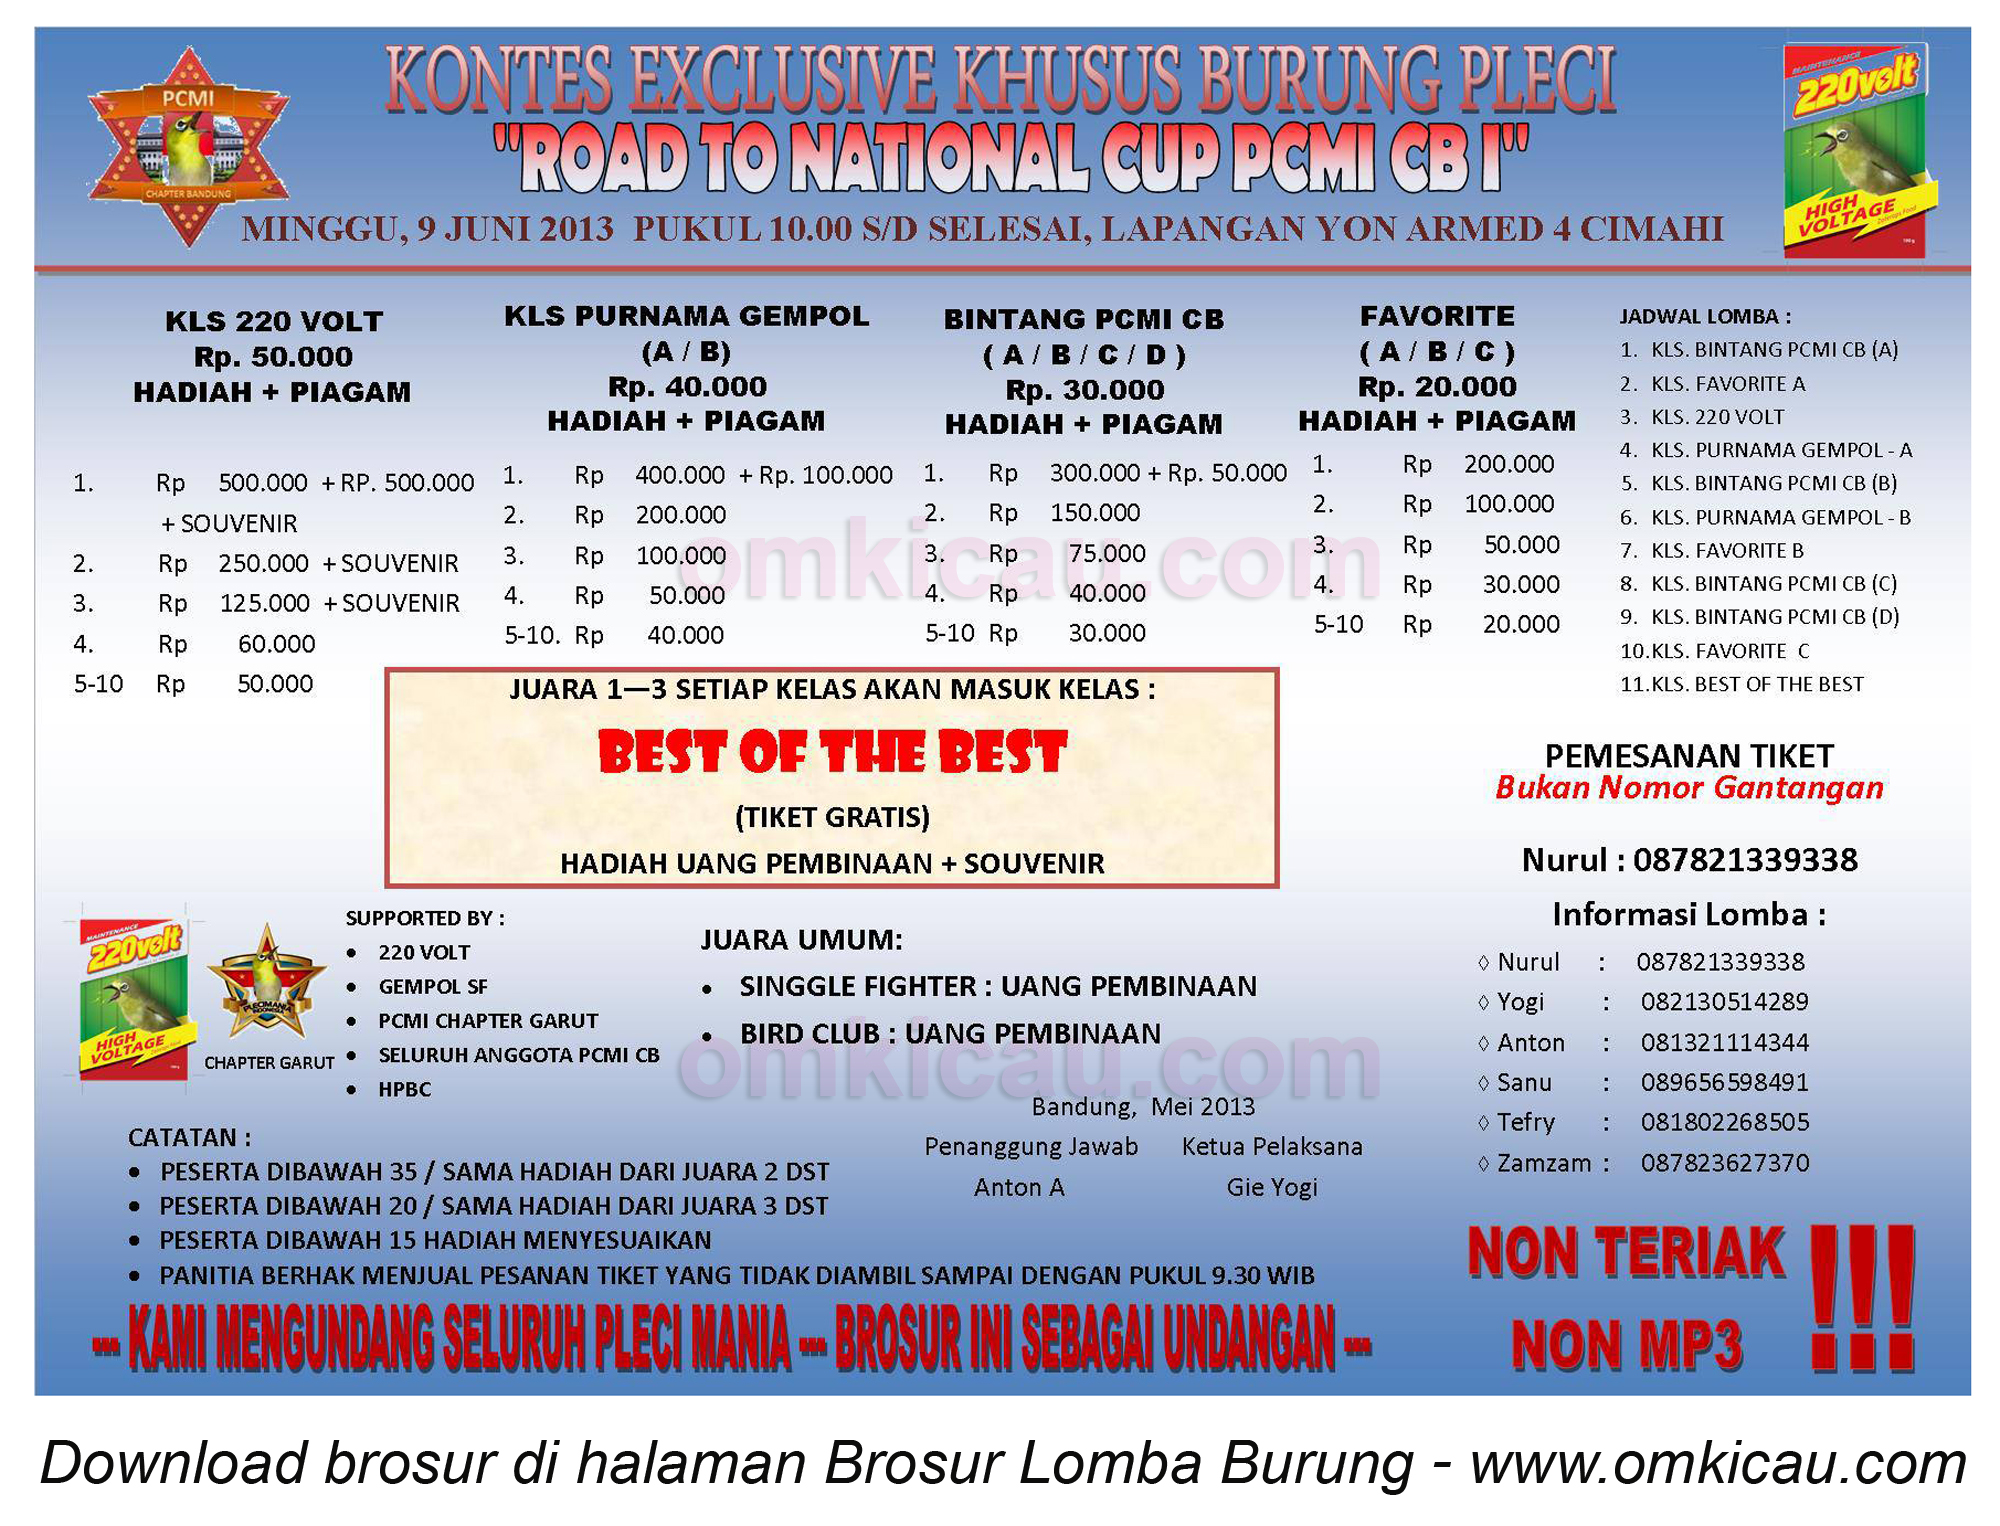 Brosur Lomba Burung Road to National Cup PCMI CB I